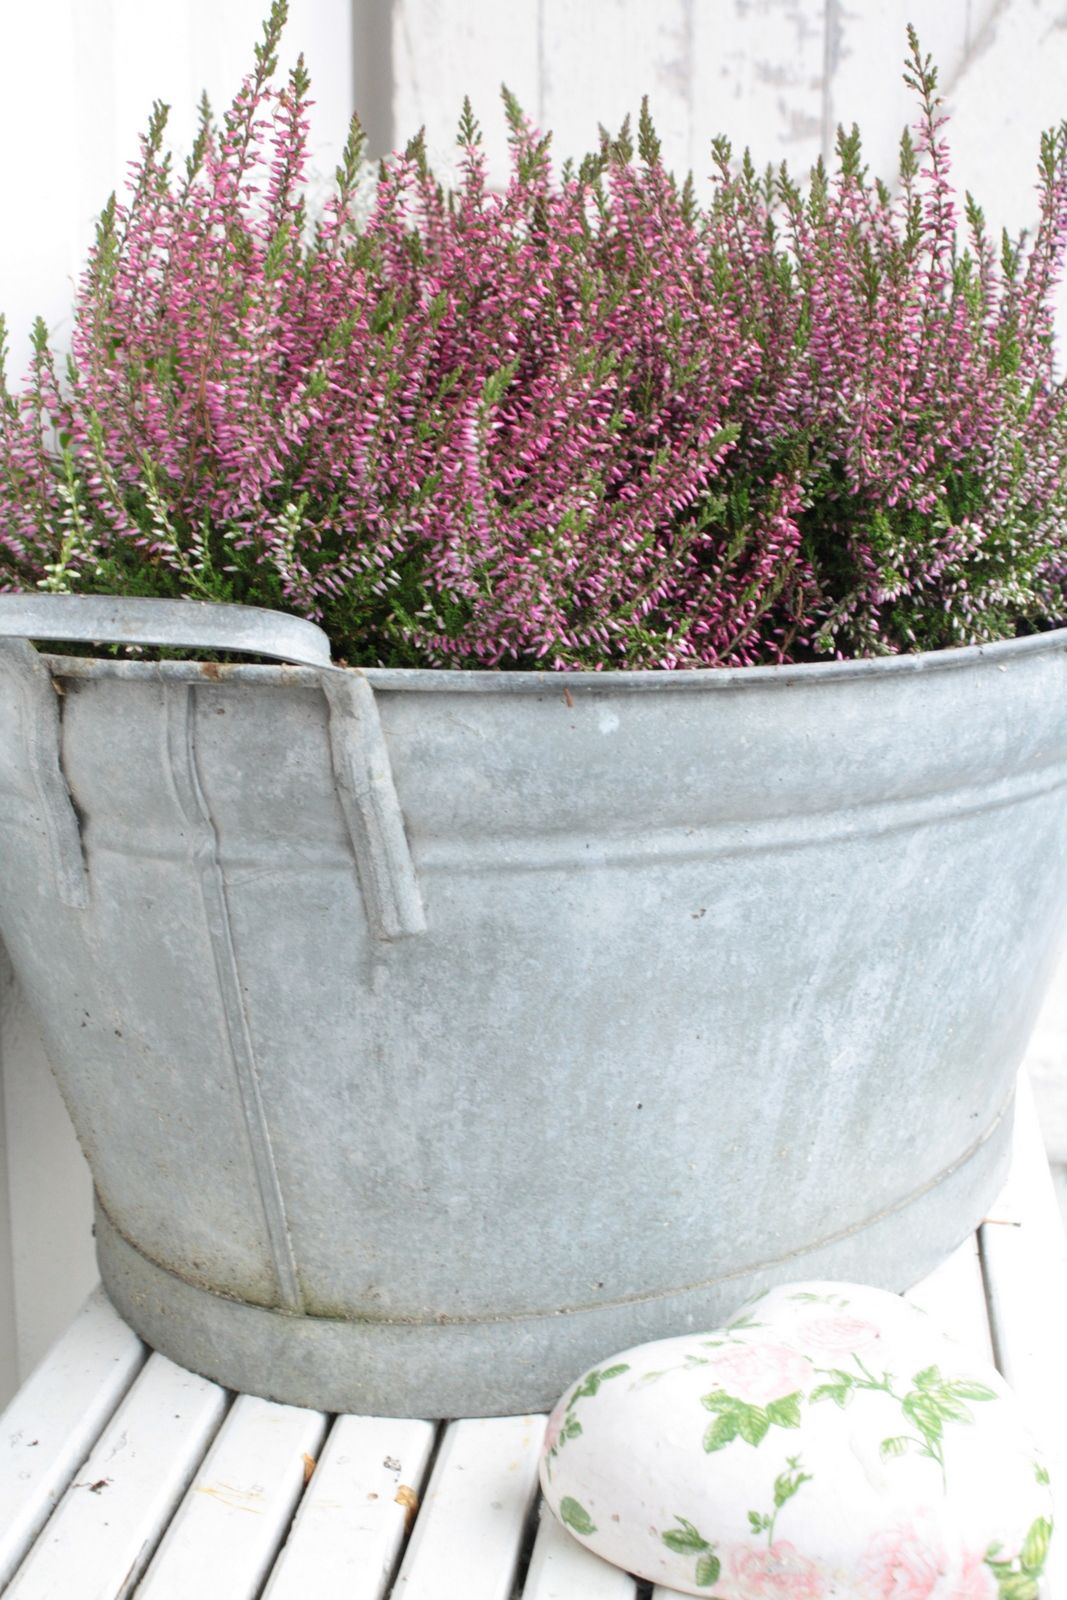 Plant Your Heather In Old Galvanized Tins And Pots For A Great Look Garden Containers Cottage Garden Garden Inspiration